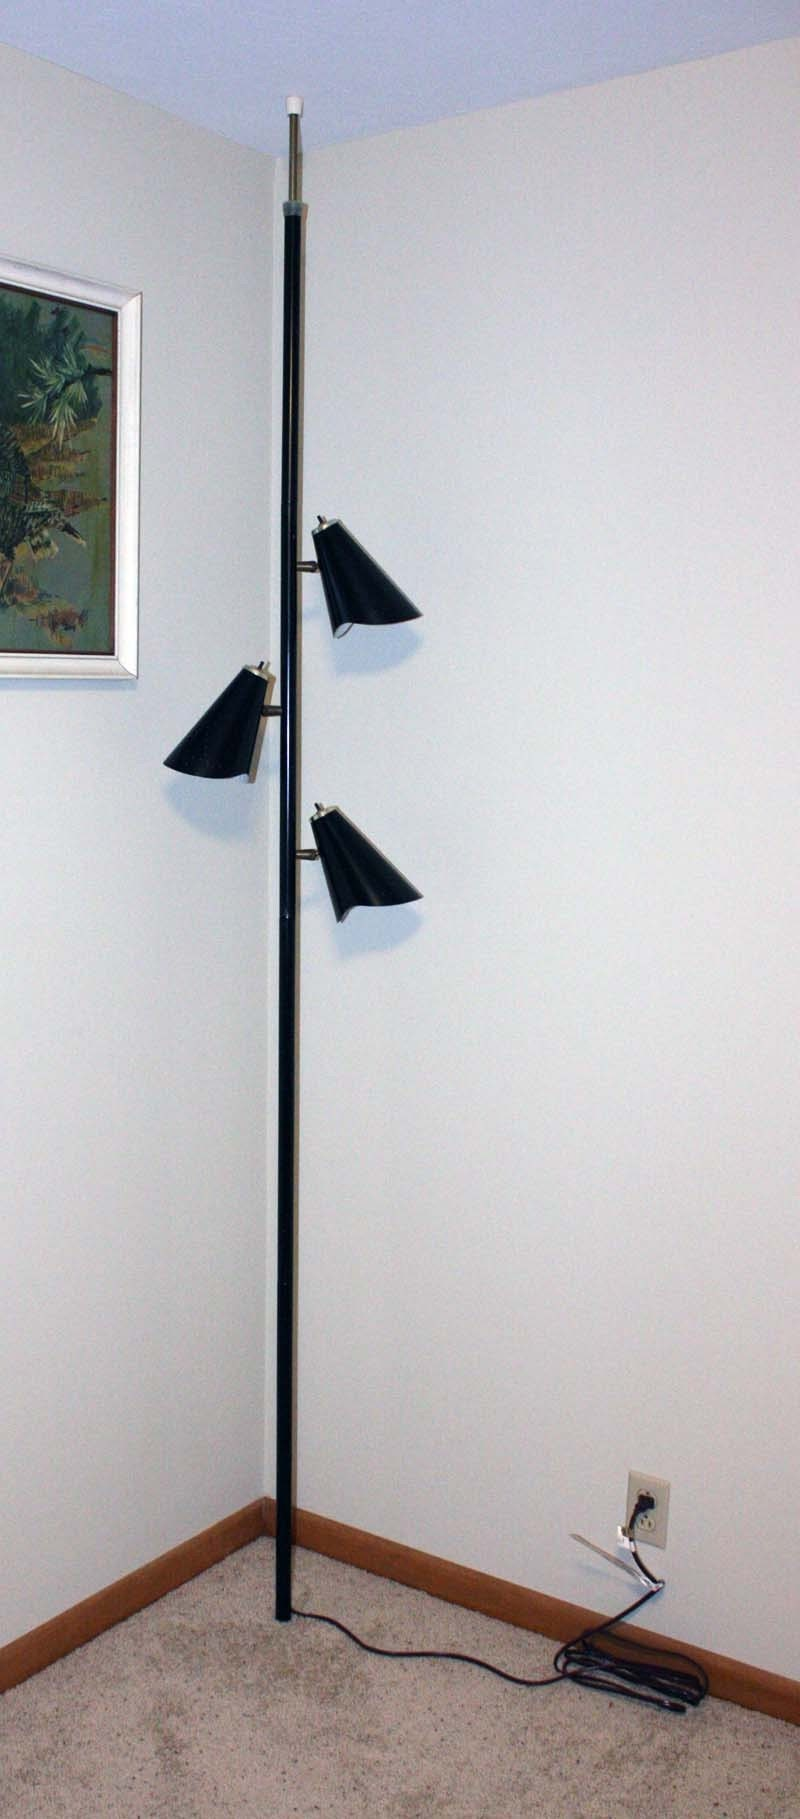 Vintage Lamp Pole Lamp Tension Pole Lamp Black Mid